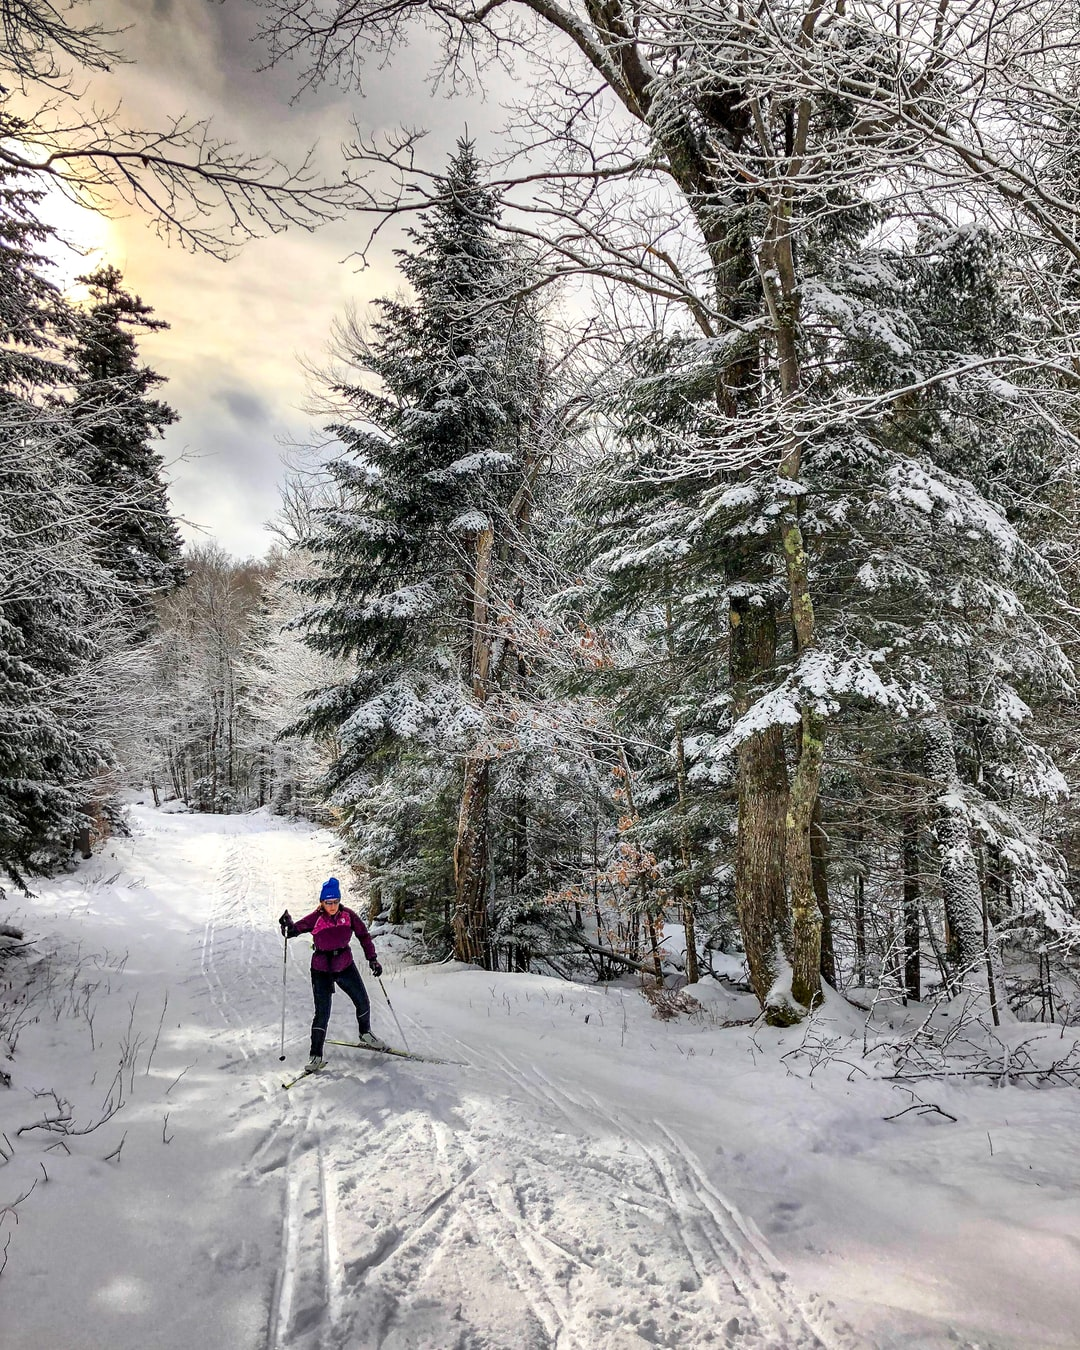 """-16F Christmas Eve 2017....set out to go visit """"The GOAT"""". Goddess Of Anaerobic  Threshold.  Skis were barely gliding, but we persevered, climbing 1K Vertical up Porter Mountain.  Just as we were making our way down Porter I turned around and caught this skier in the beautiful afternoon light."""